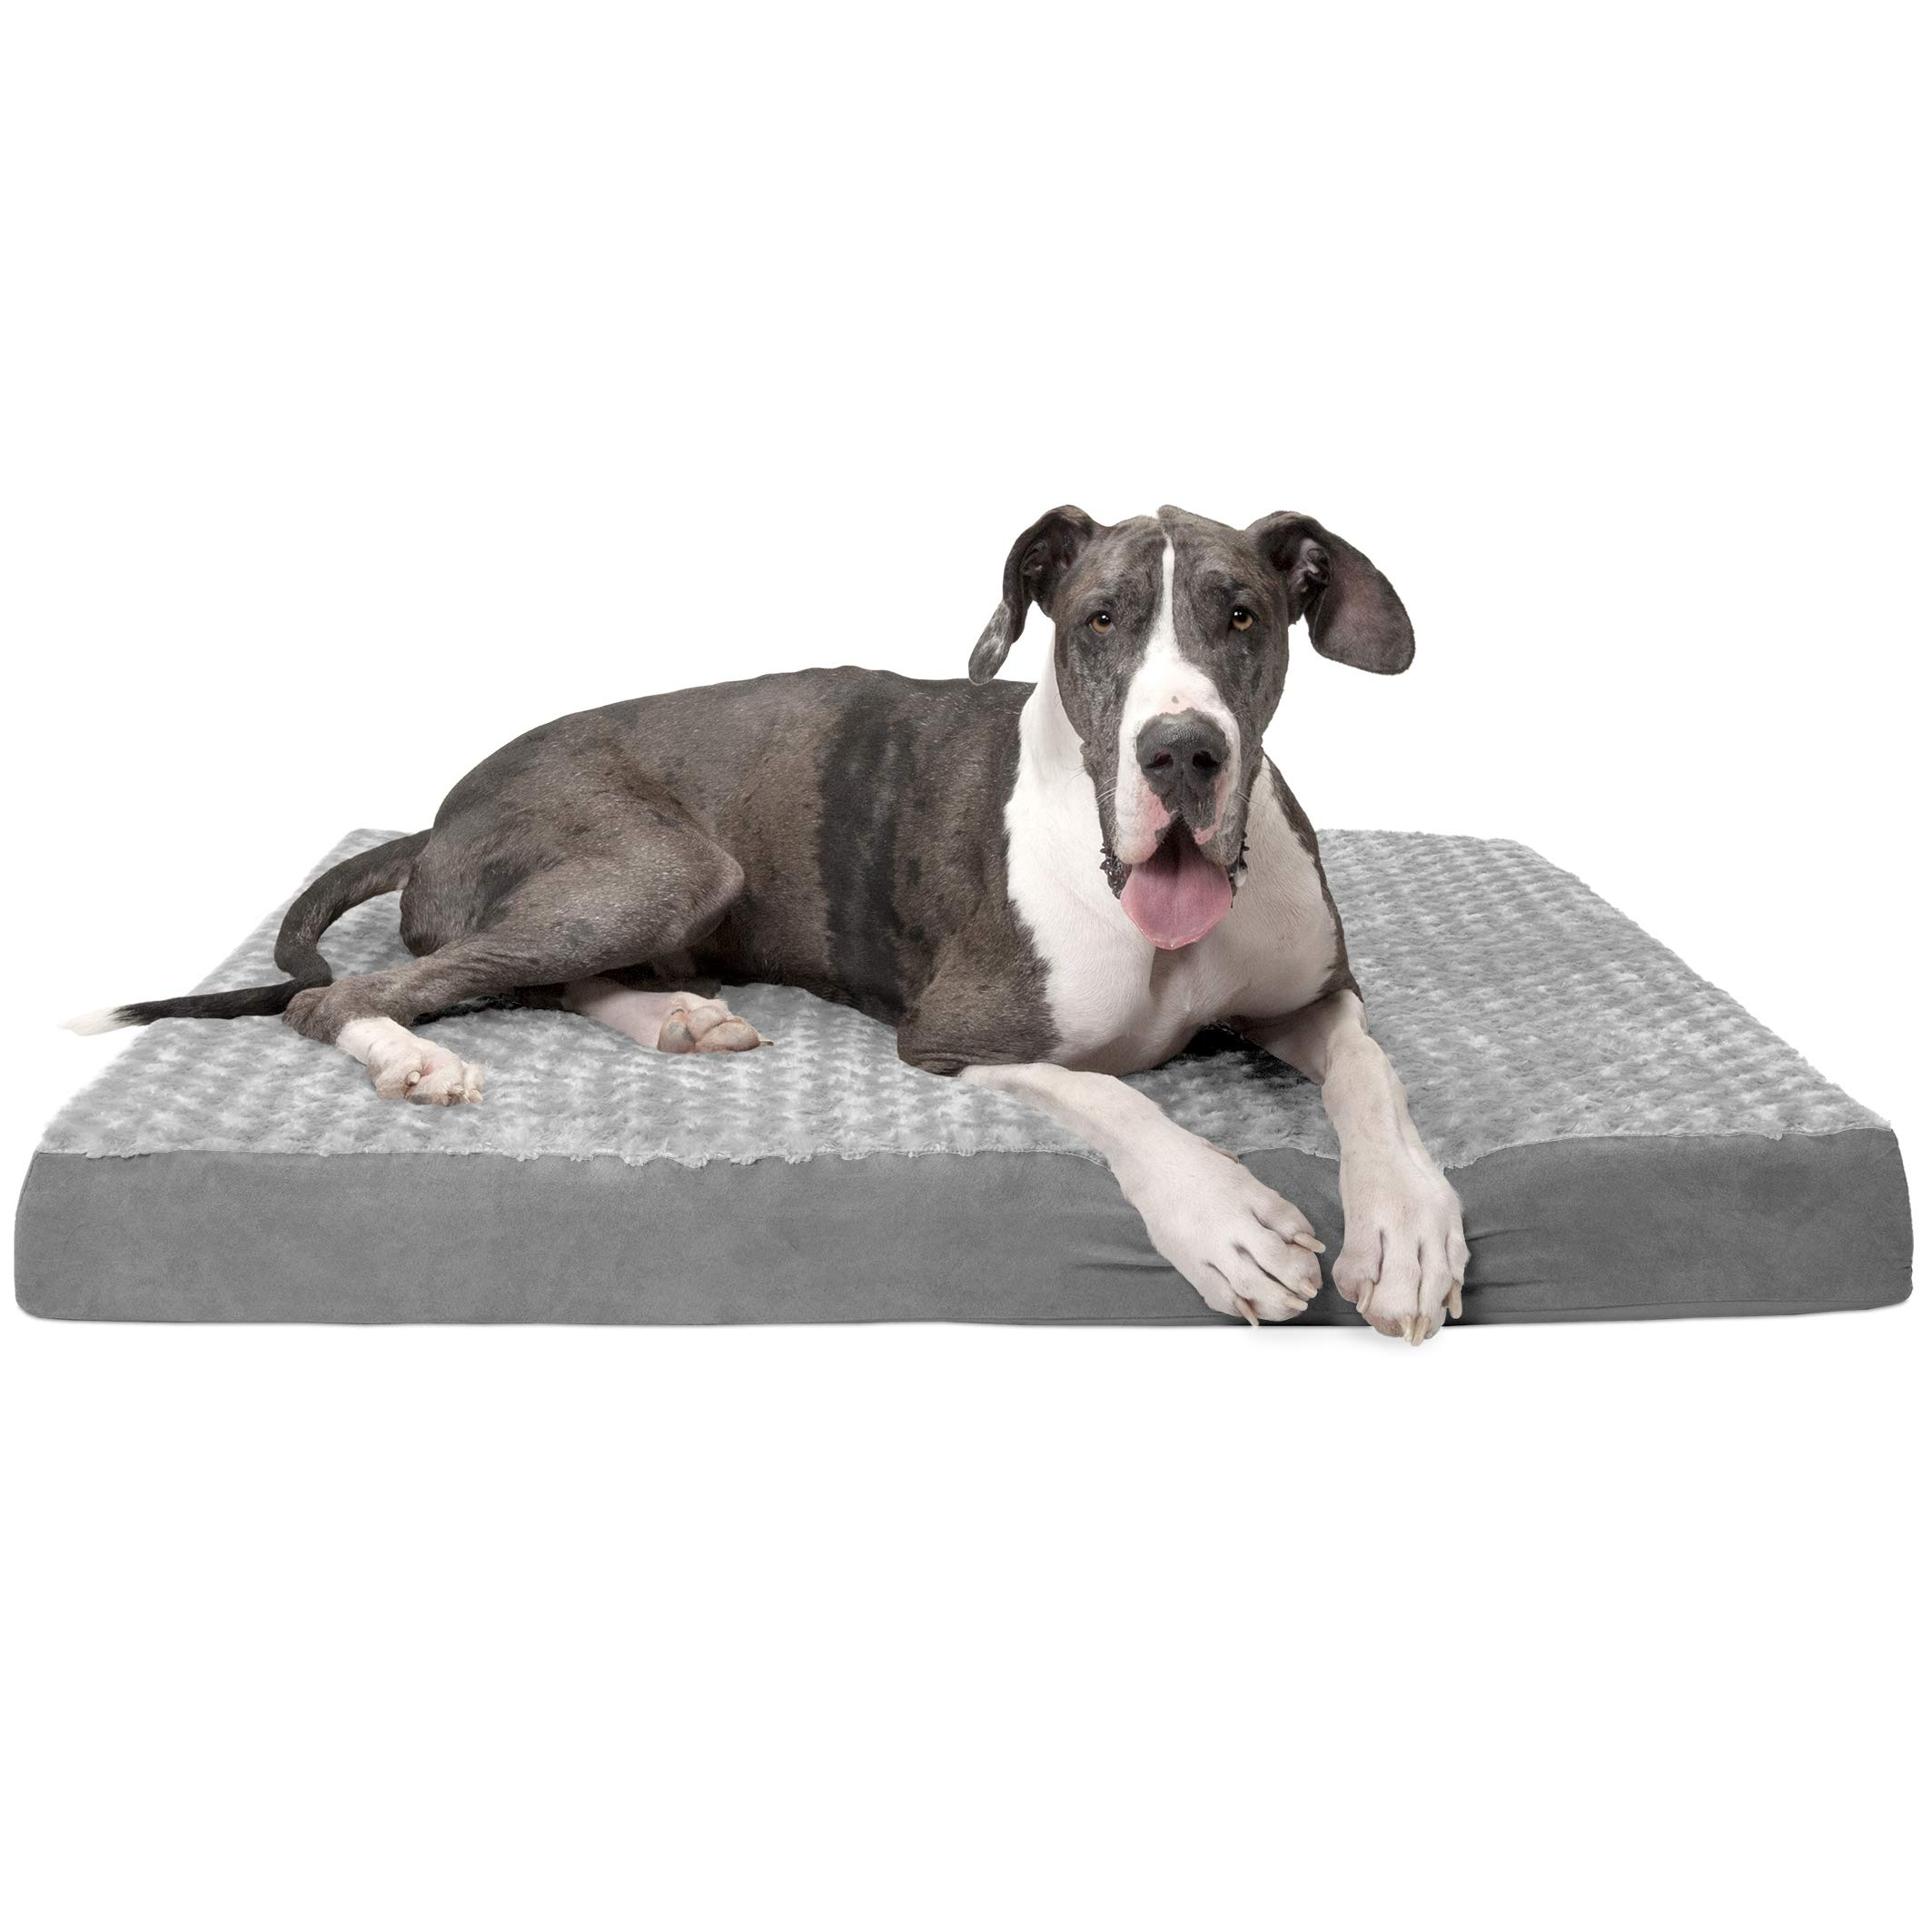 Furhaven Pet Dog Bed | Deluxe Orthopedic Mat Ultra Plush Faux Fur Traditional Foam Mattress Pet Bed w/ Removable Cover for Dogs & Cats, Gray, Jumbo Plus by Furhaven